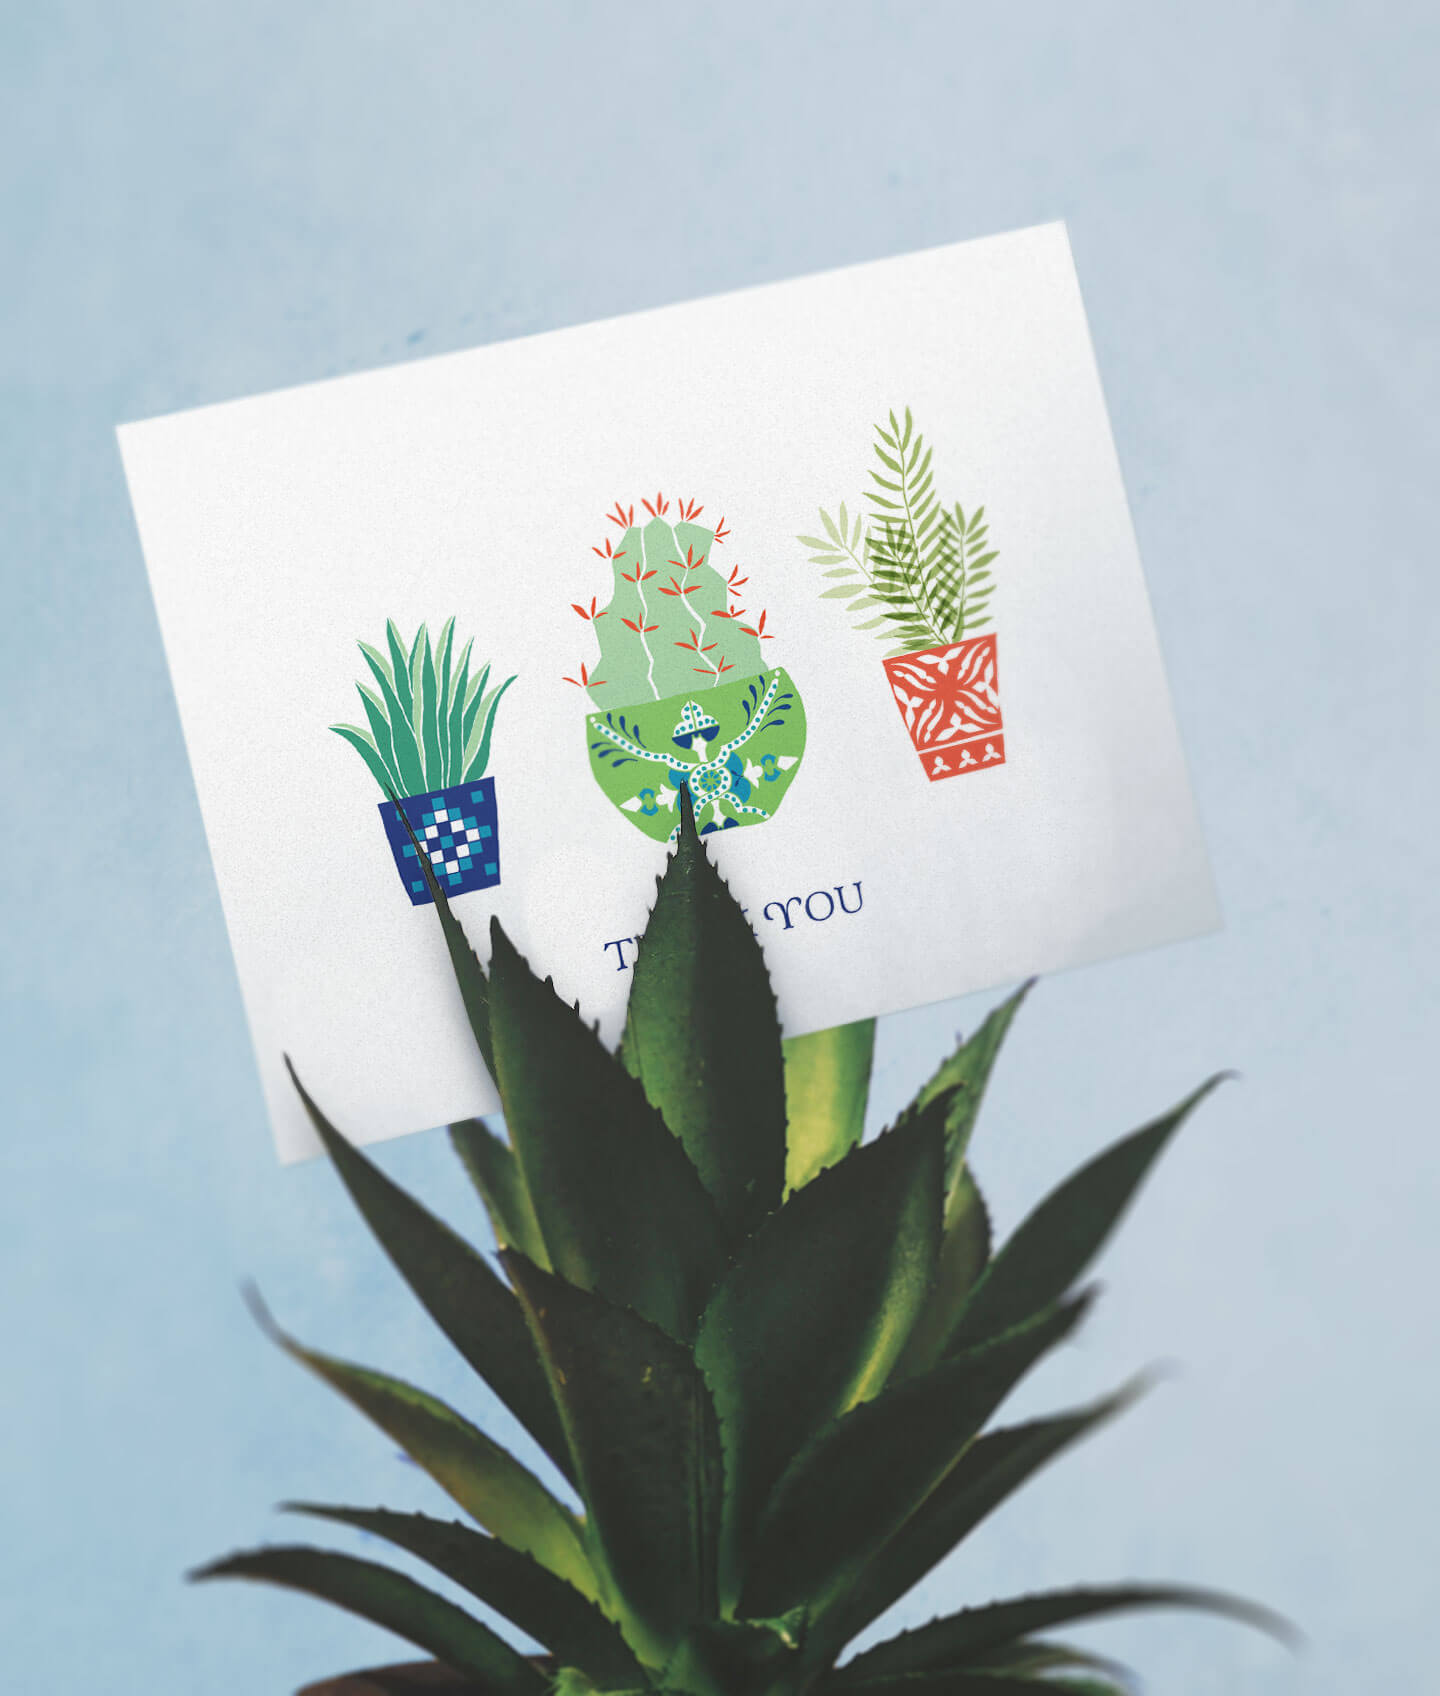 A greeting card with succulent illustration placed between cactus plant leaves.